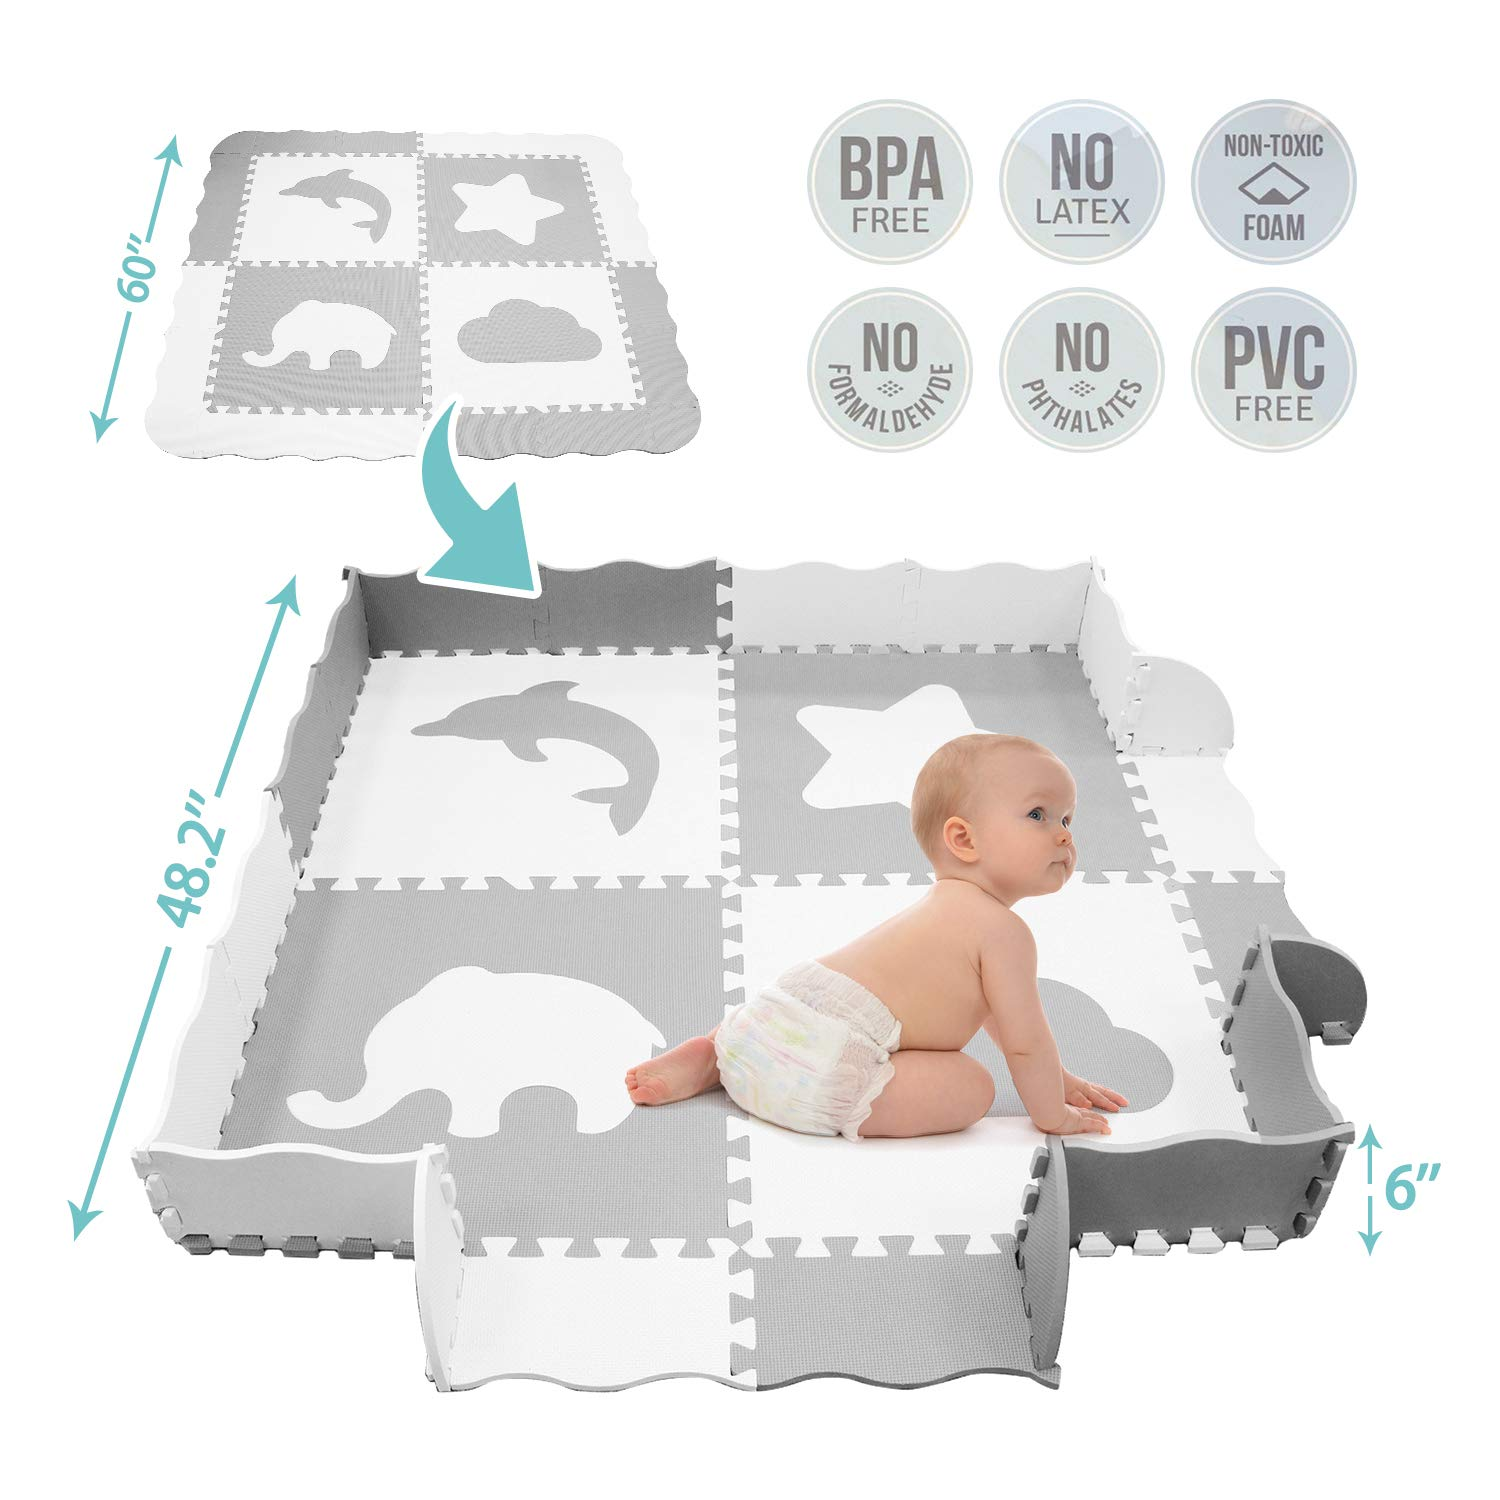 TCBunny Baby Play Mat with Fence, Large, 5 X 5 feet